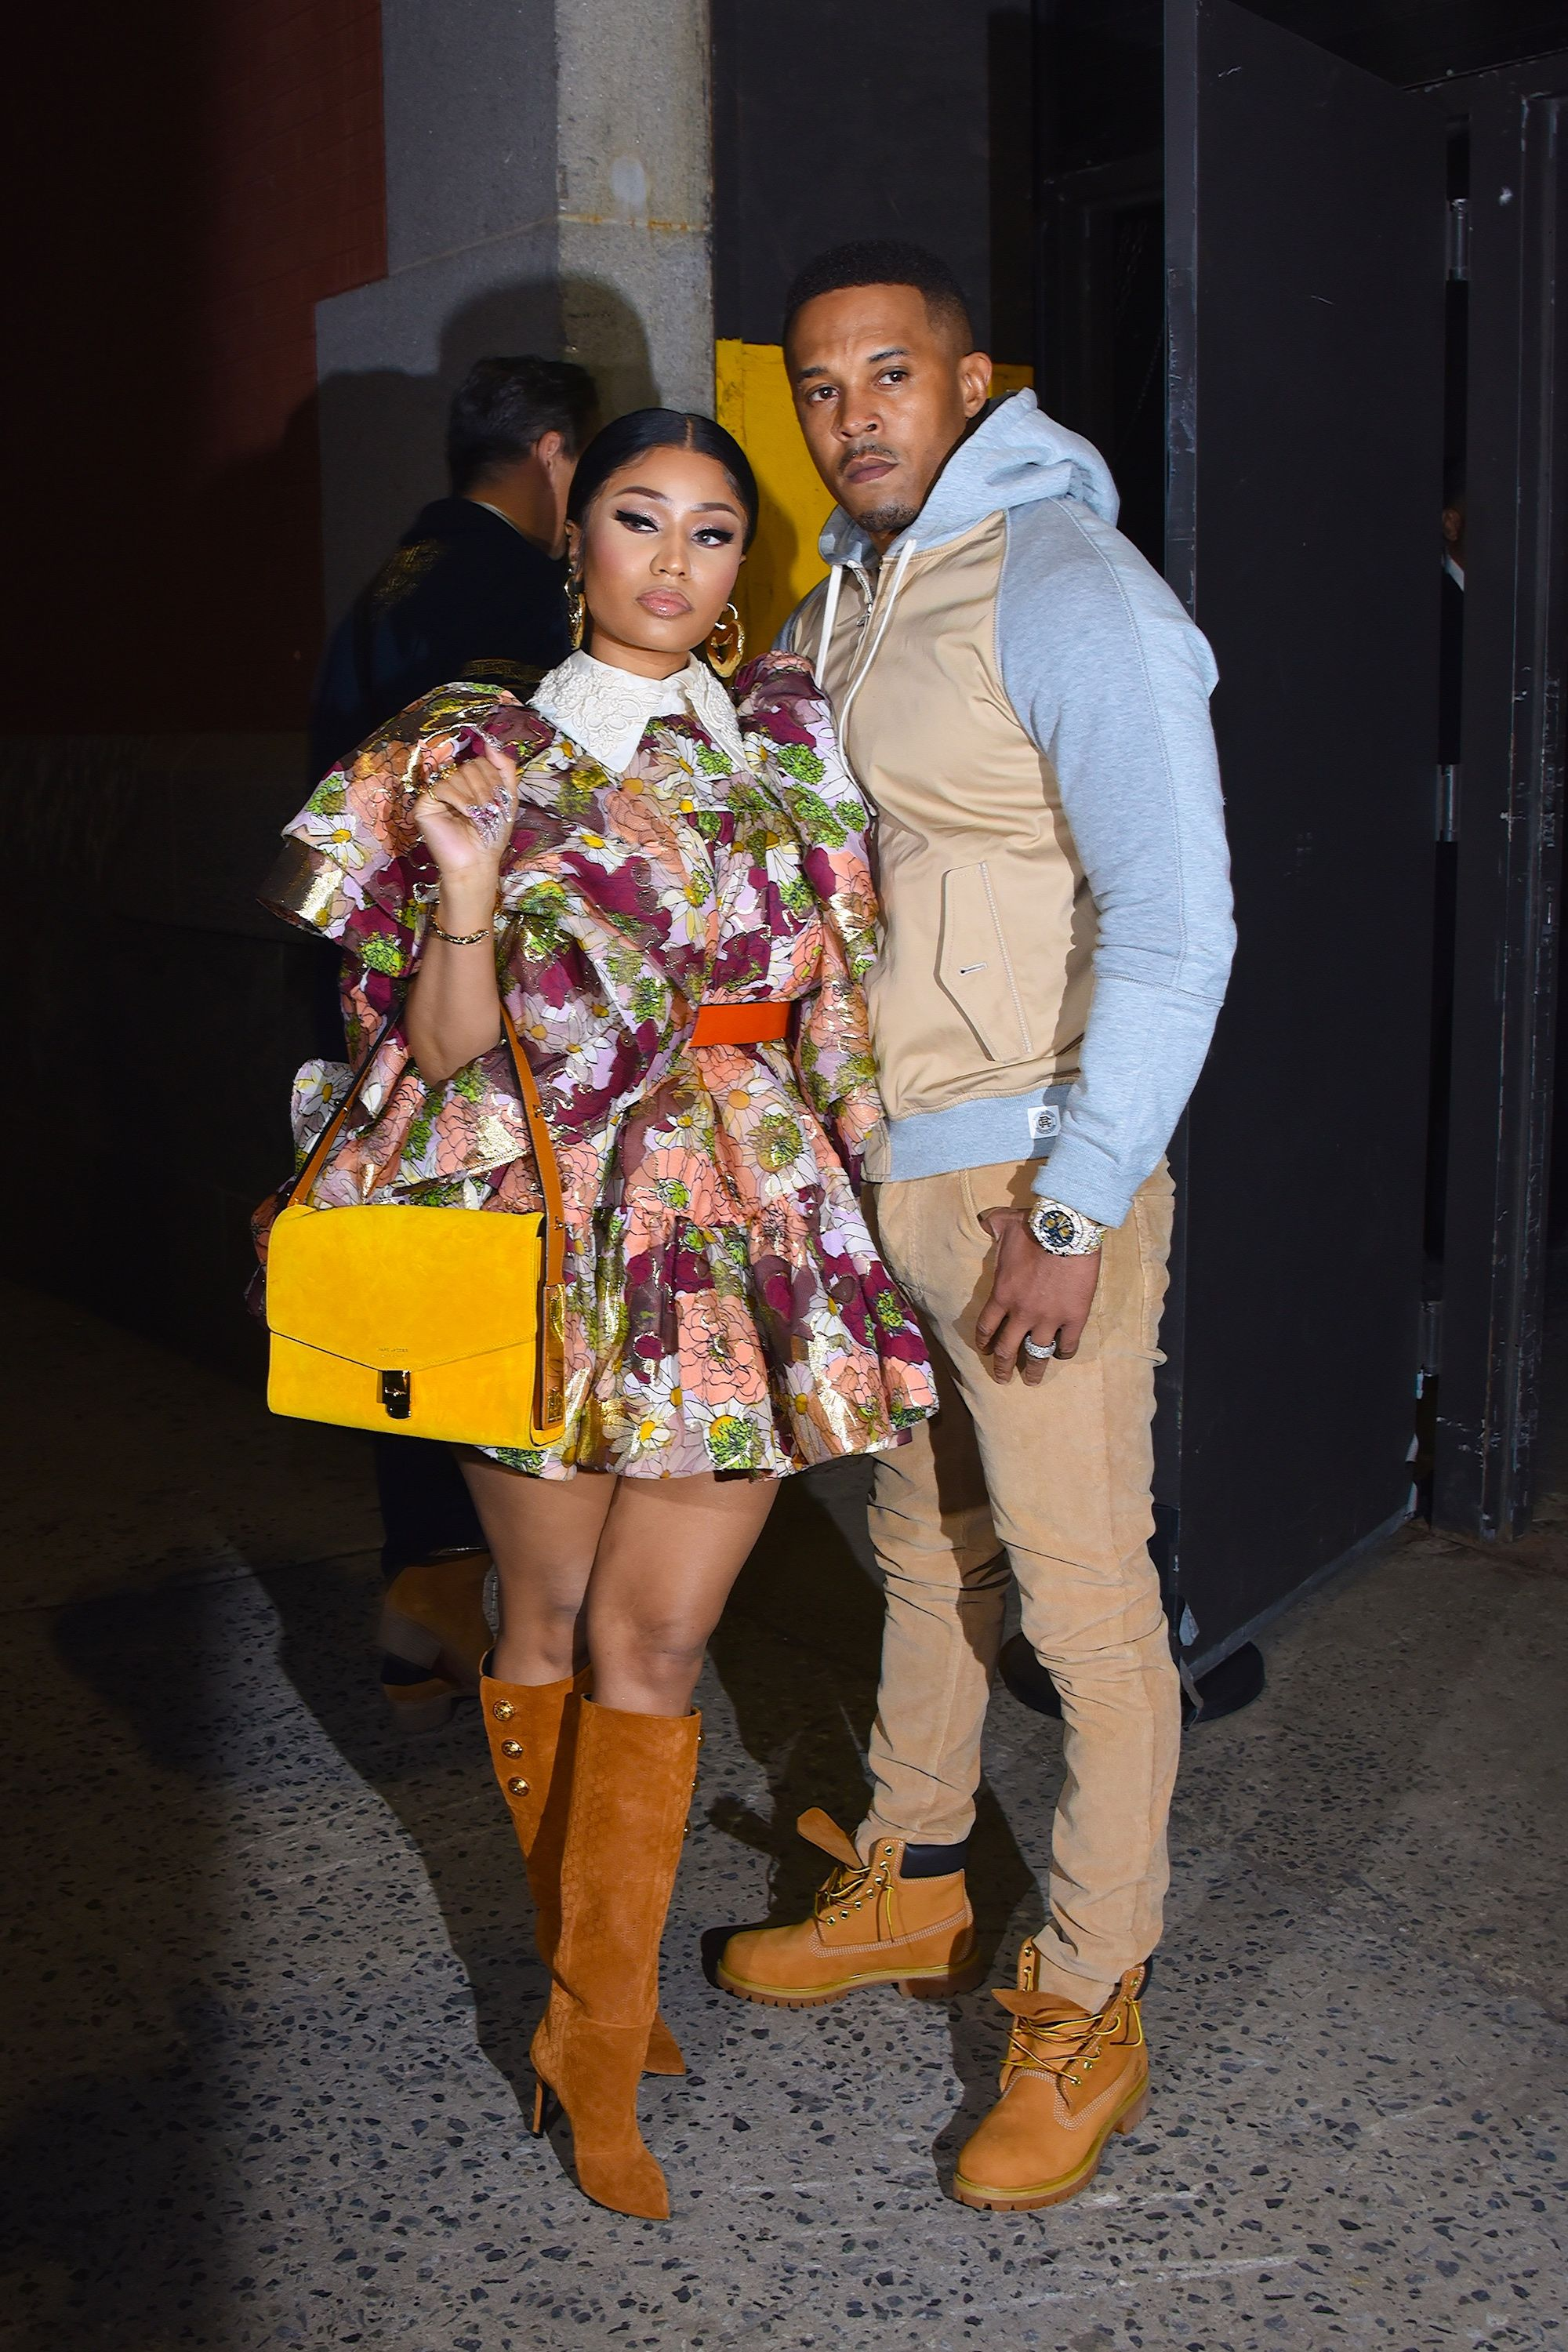 Nicki Minaj and husband Kenneth Petty seen at a Marc Jacobs NYFW event in Manhattan on February 12, 2020, in New York City. | Photo: Robert Kamau/GC Images/Getty Images